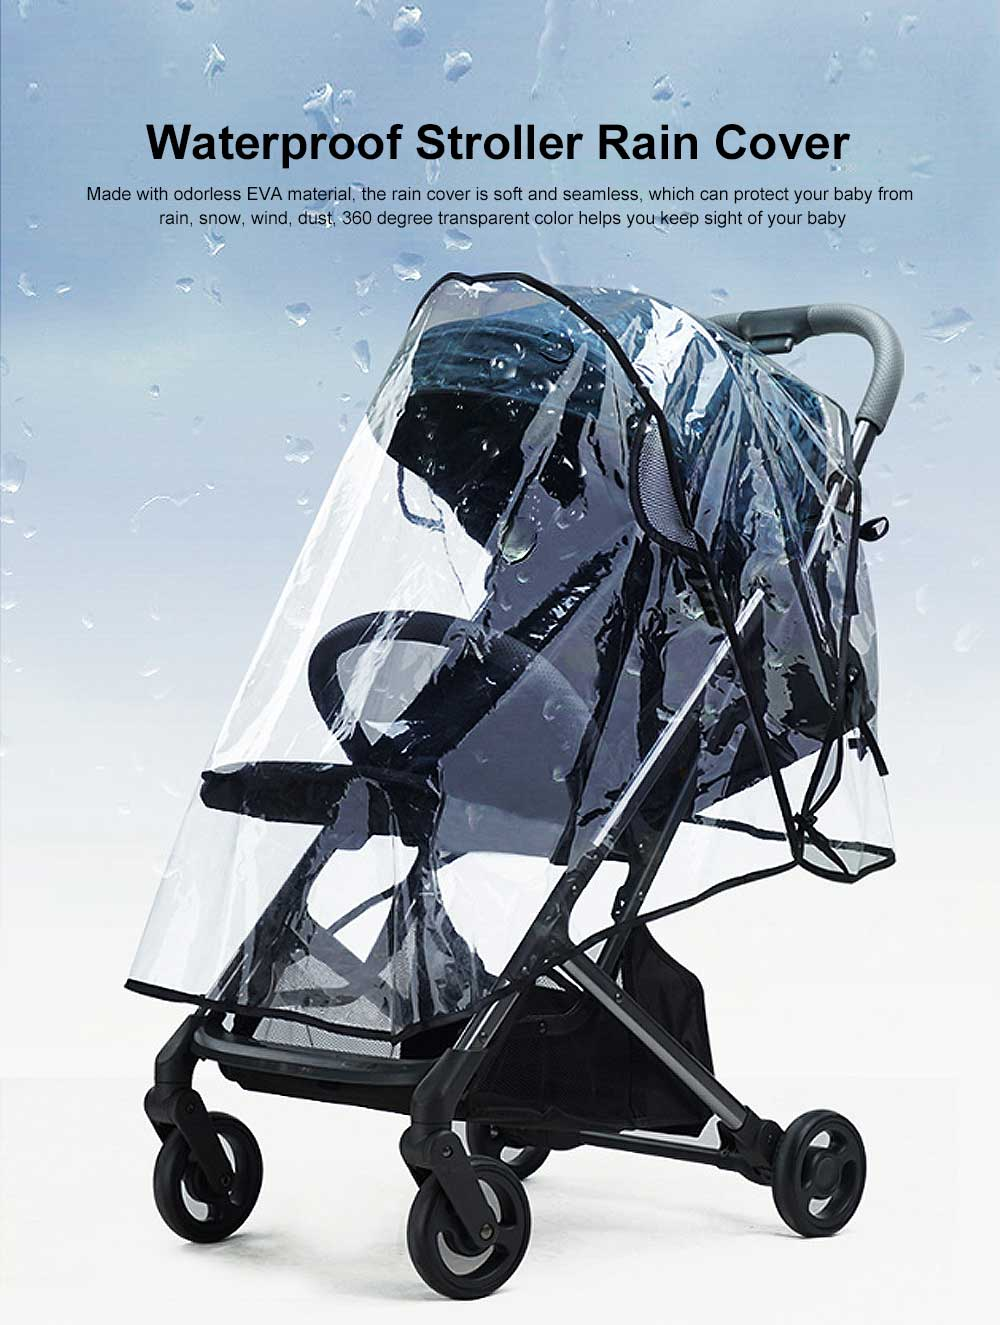 Baby Stroller Rain Cover Waterproof Windproof Protection Travel-Friendly Breathable baby cart umbrella for Outdoor Use Transparent 9